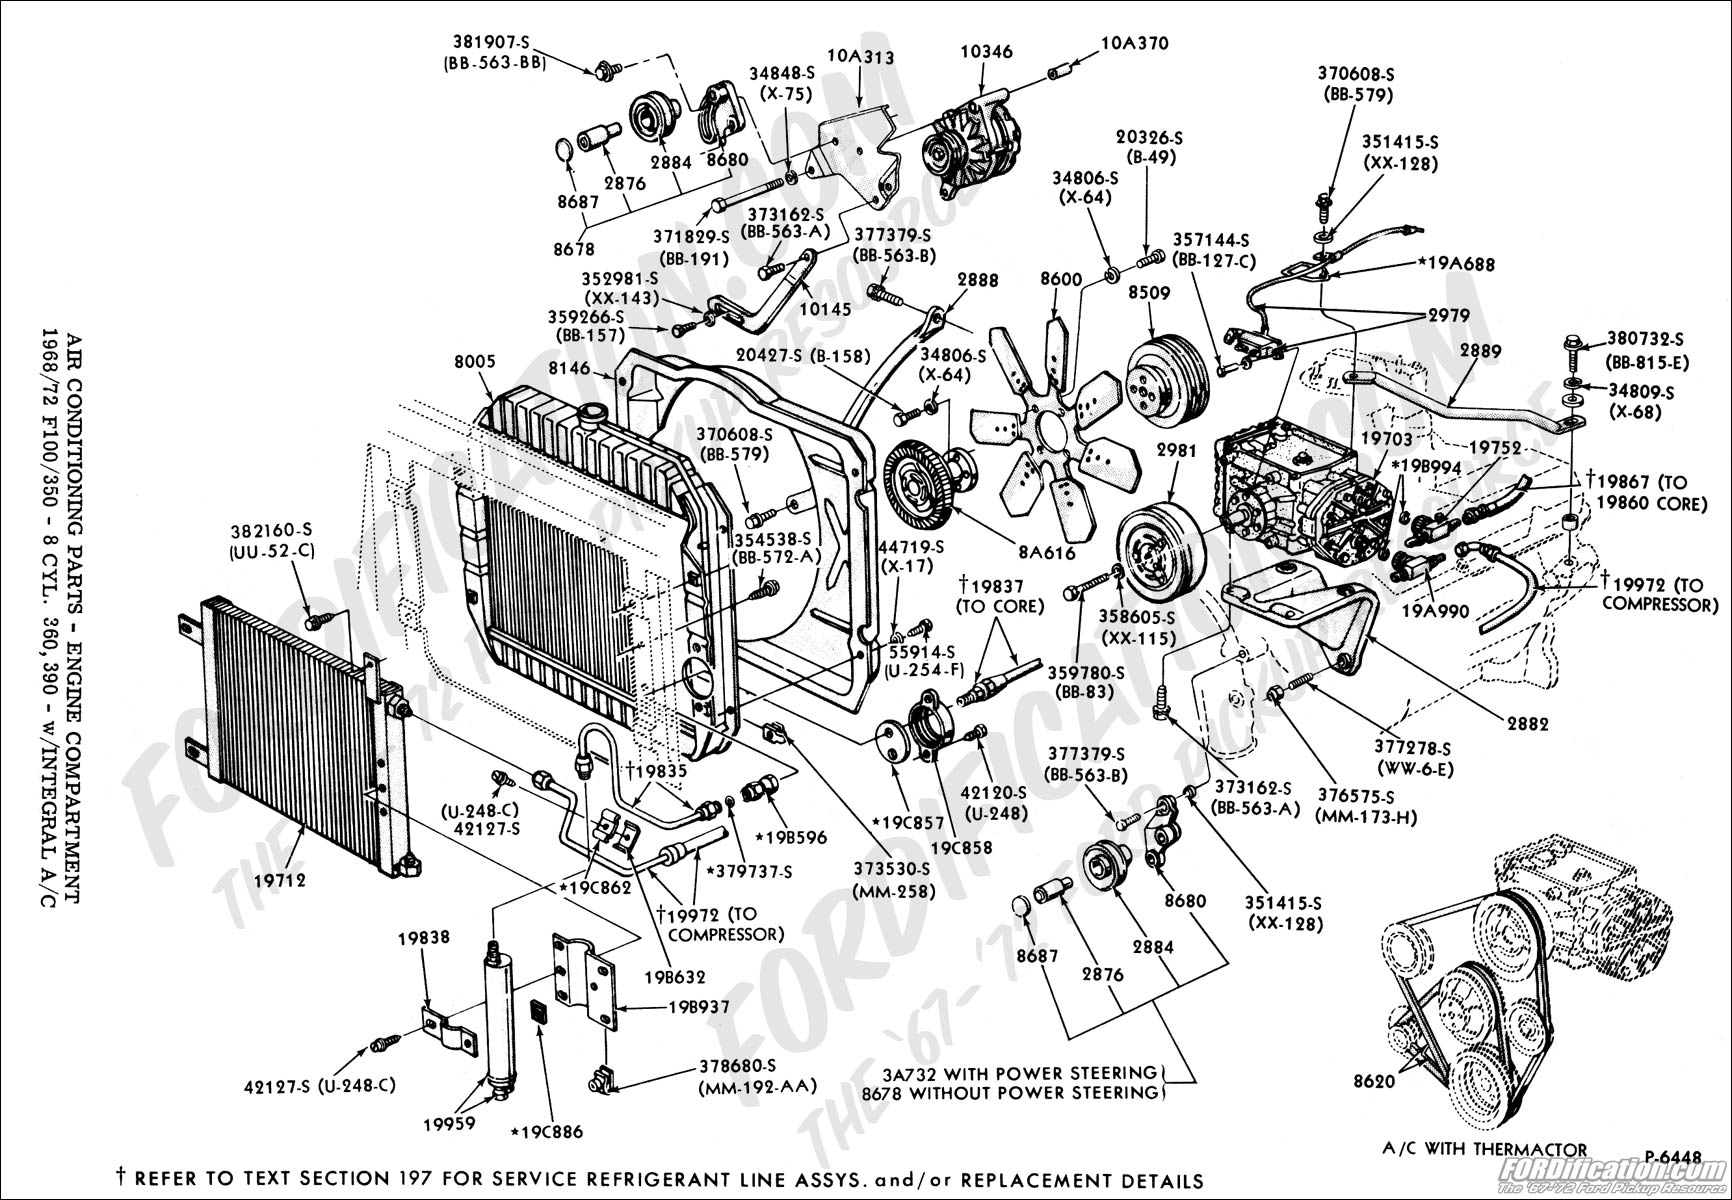 Nissan Pathfinder Air Conditioner Wiring Diagram, Nissan